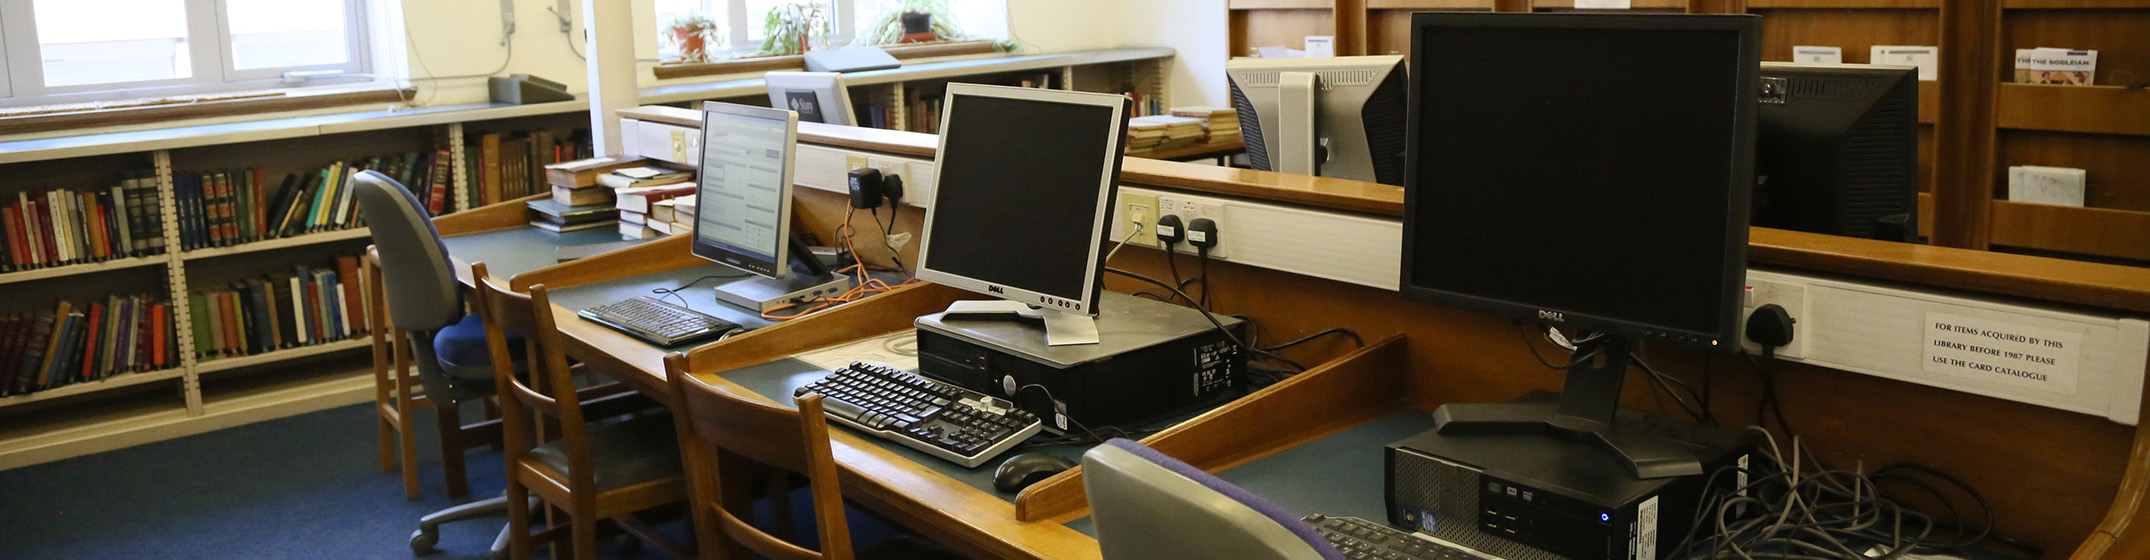 A row of three desktop computers on a wooden desk